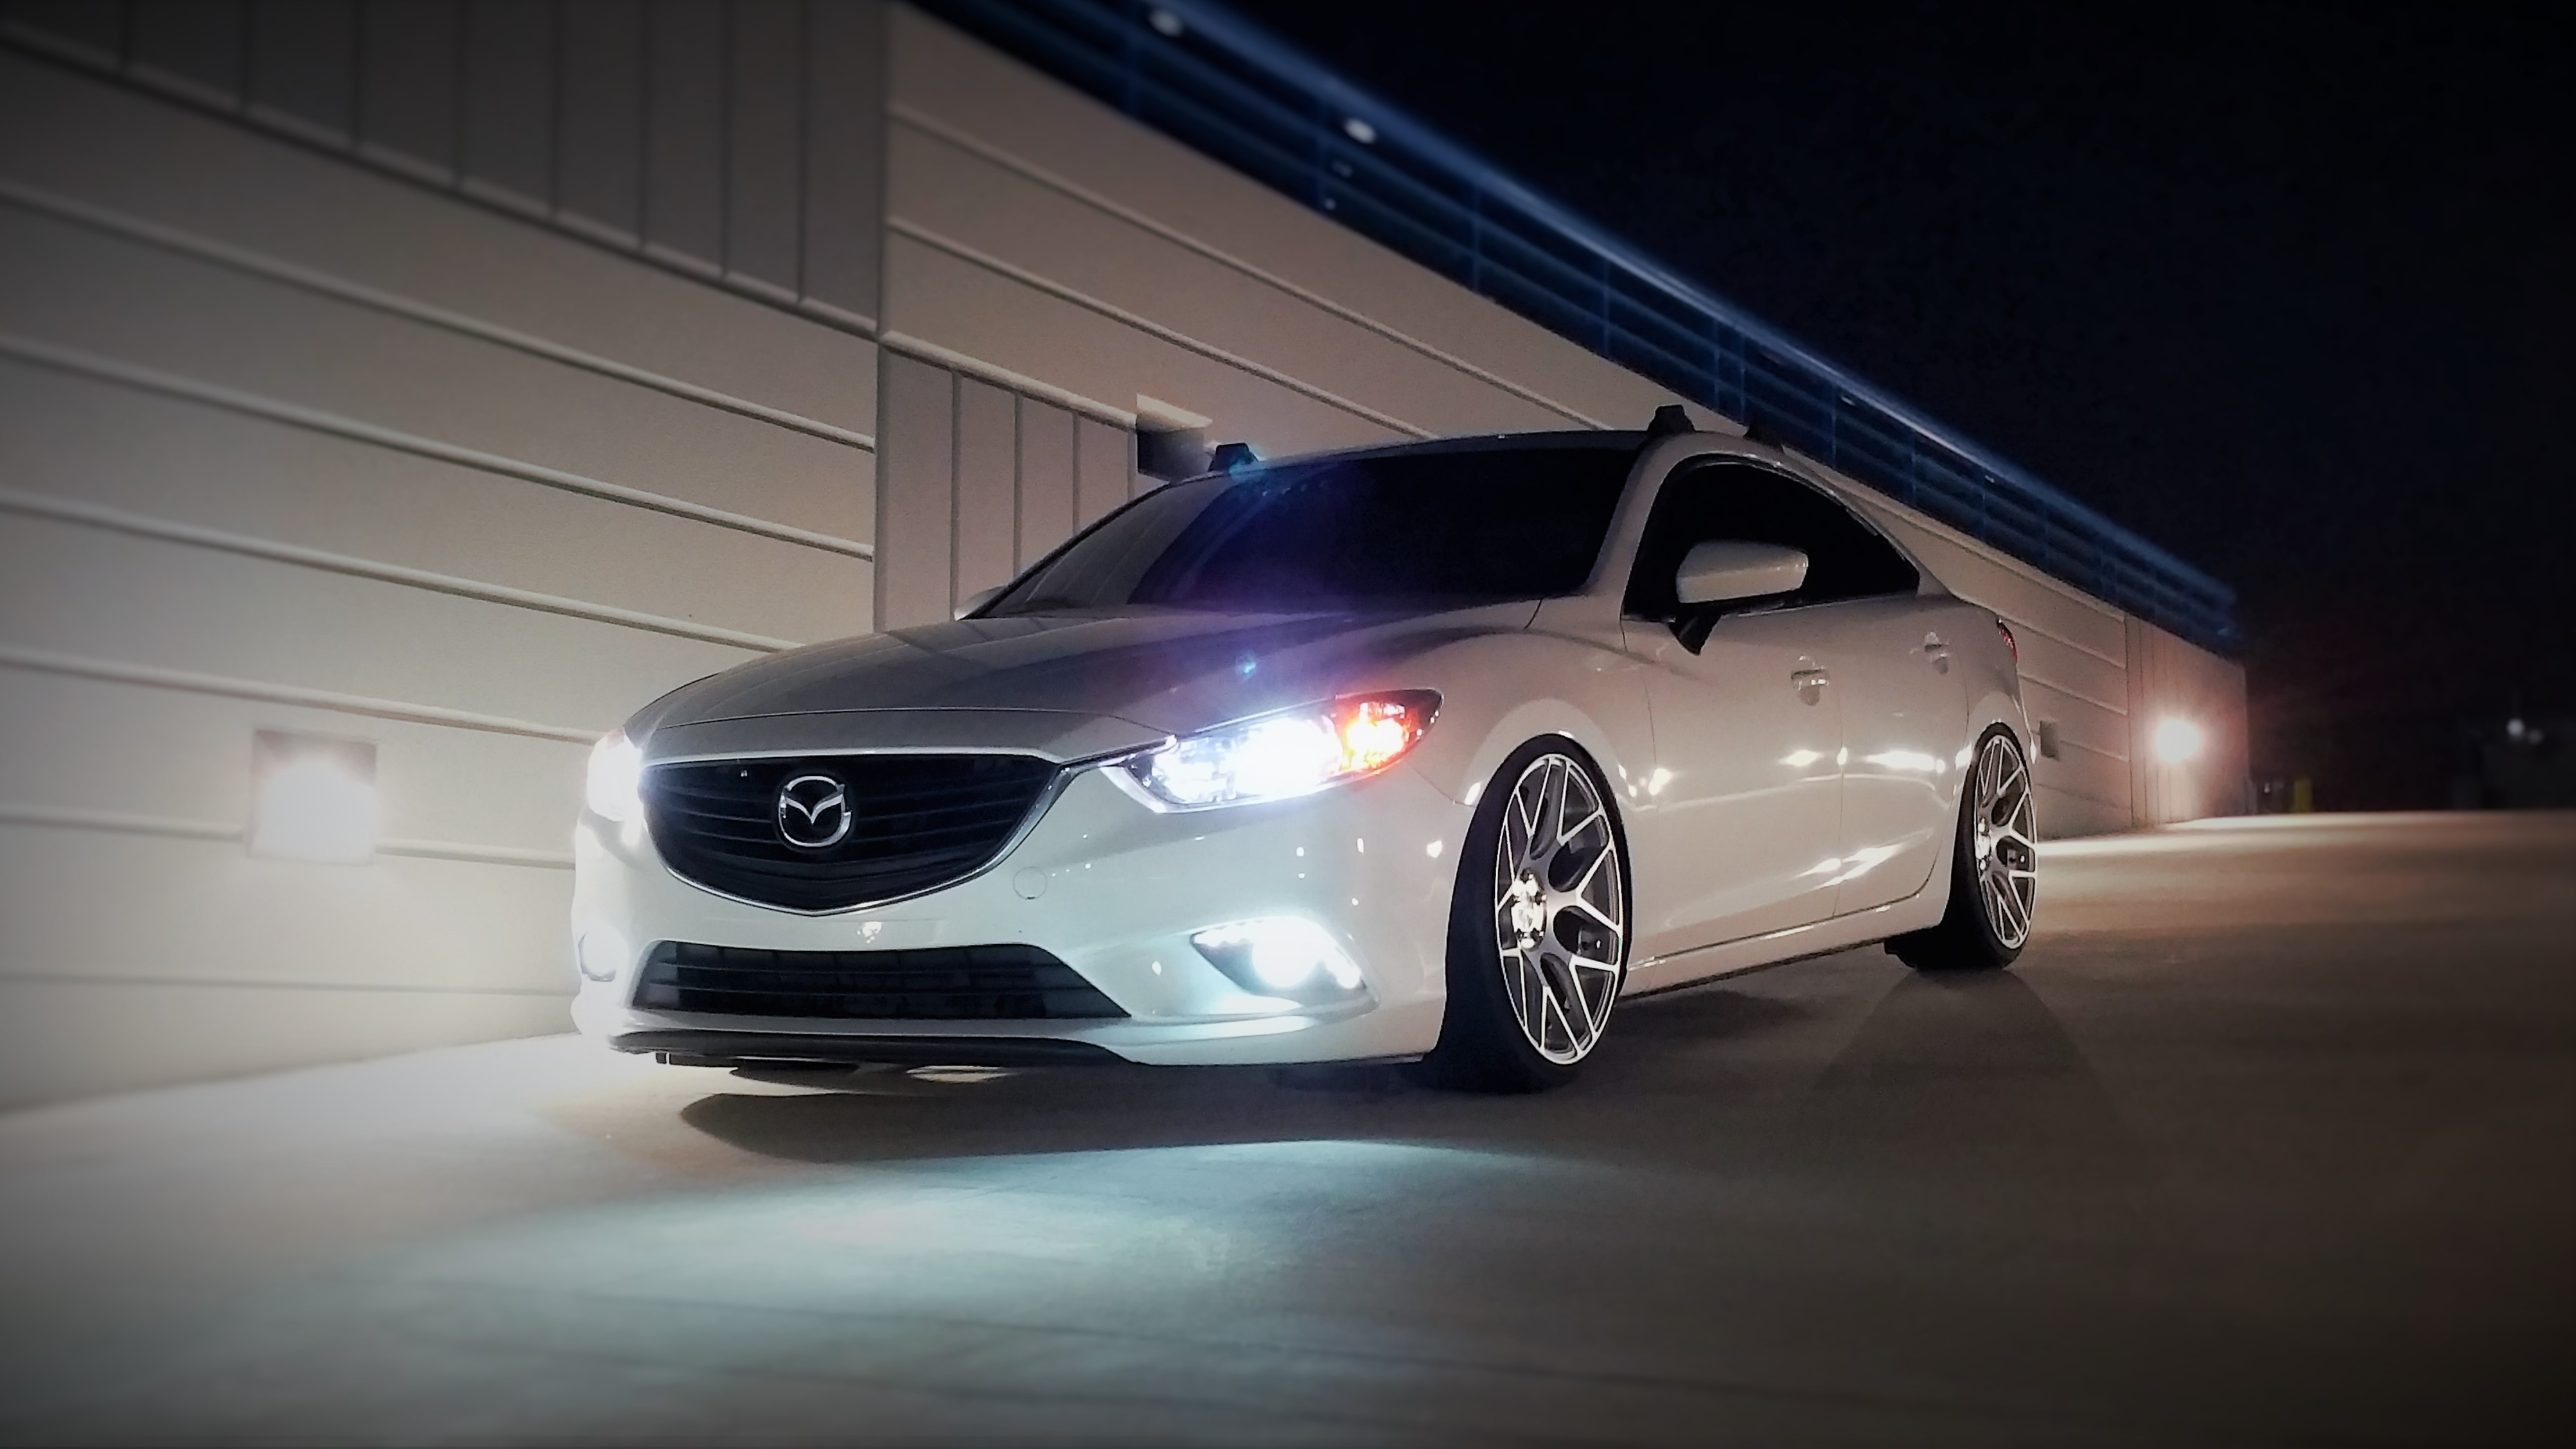 more now today with gen white touring pedeals atenza my new grand mazda forum up forums picked